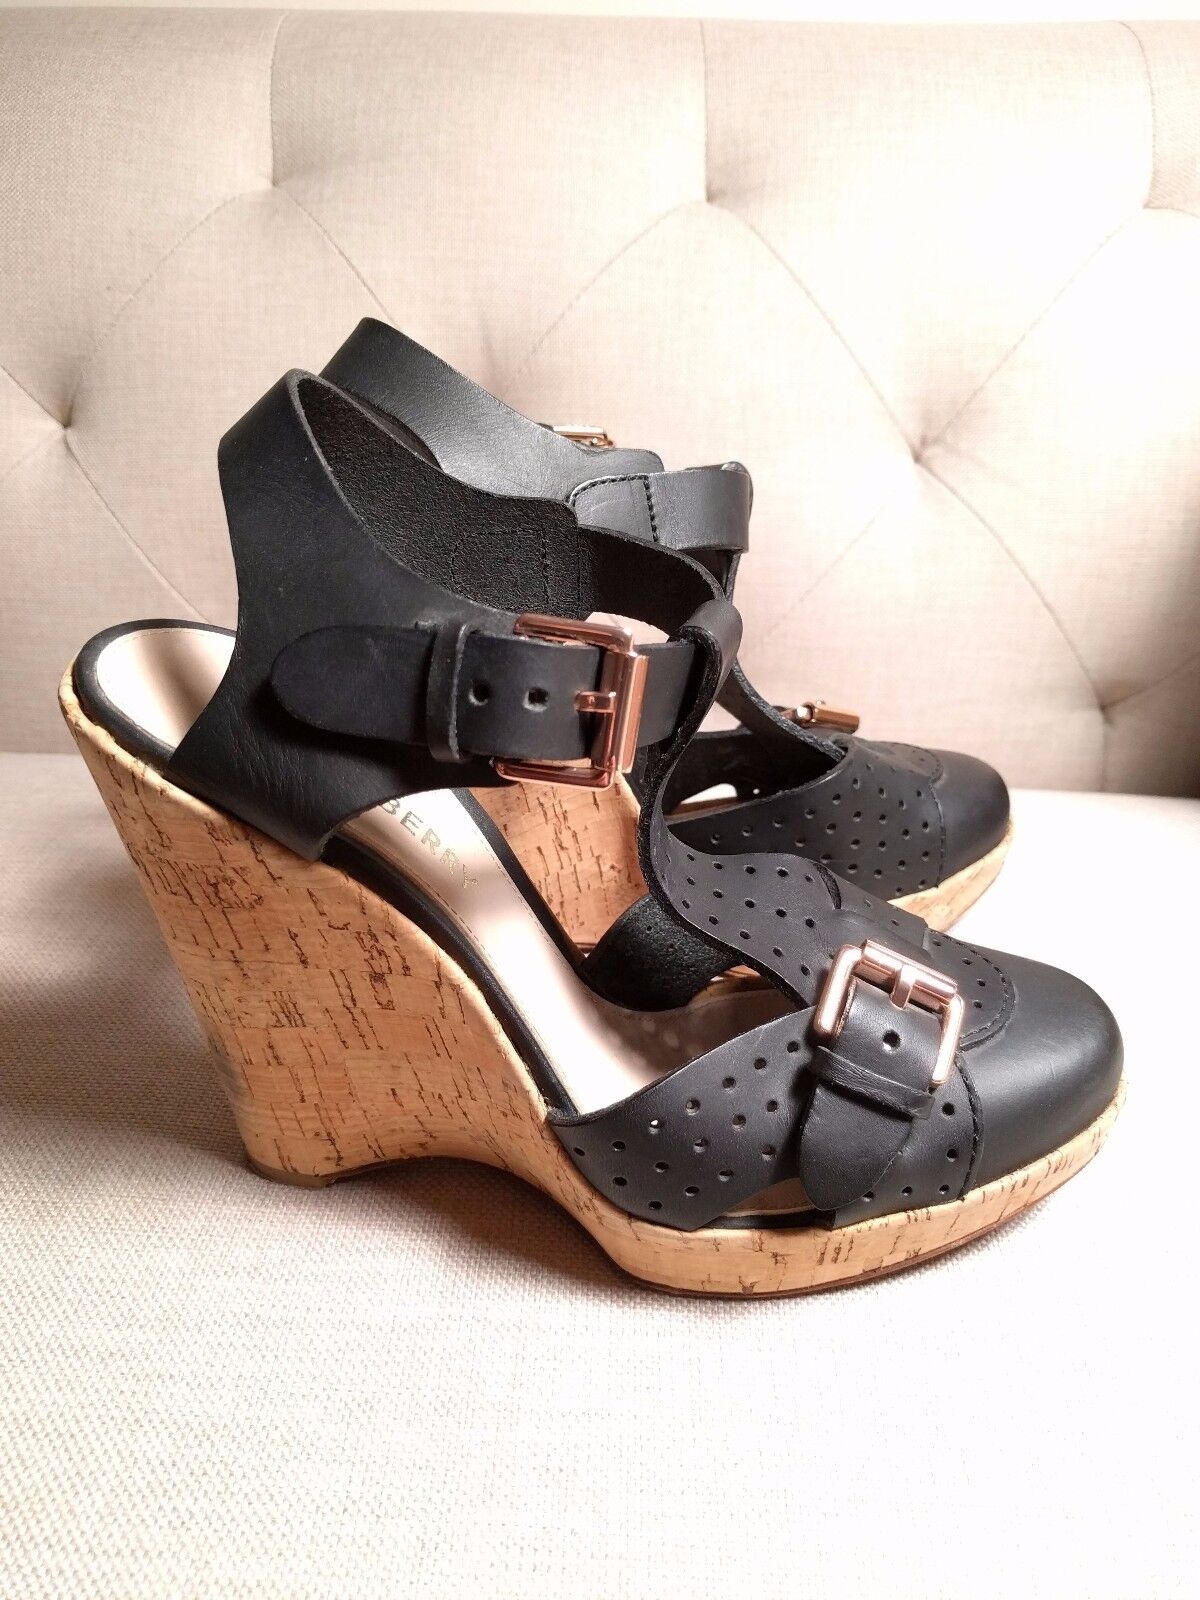 MULBERRY Leather Sandals Cork Wedge black leather buckle 39 9